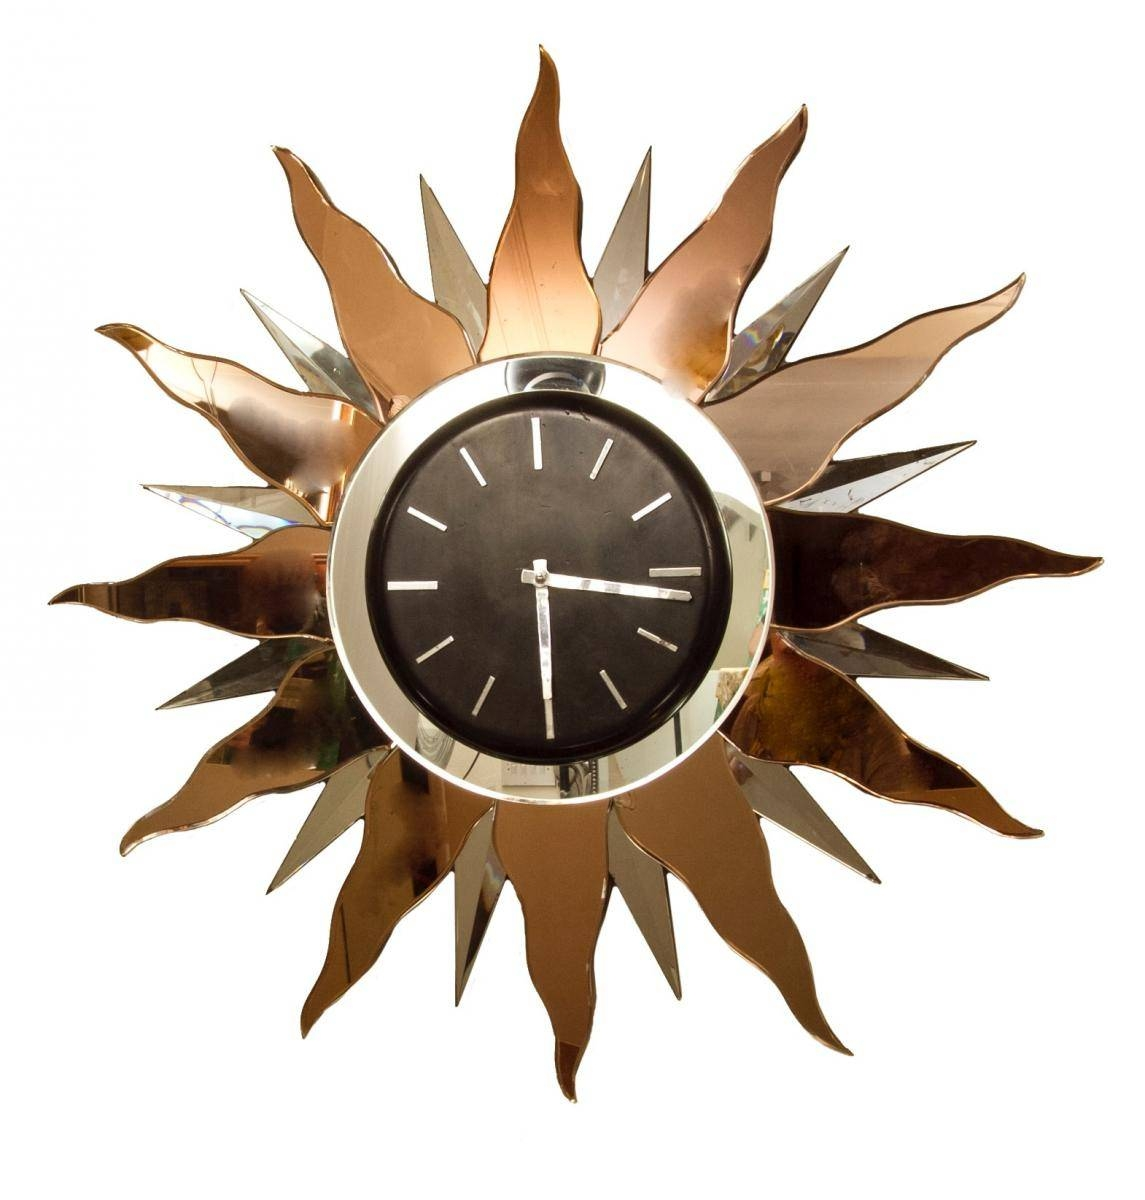 Large Art Deco Wall Clock, 1930S For Sale At Pamono Throughout 2017 Large Art Deco Wall Clocks (View 19 of 30)